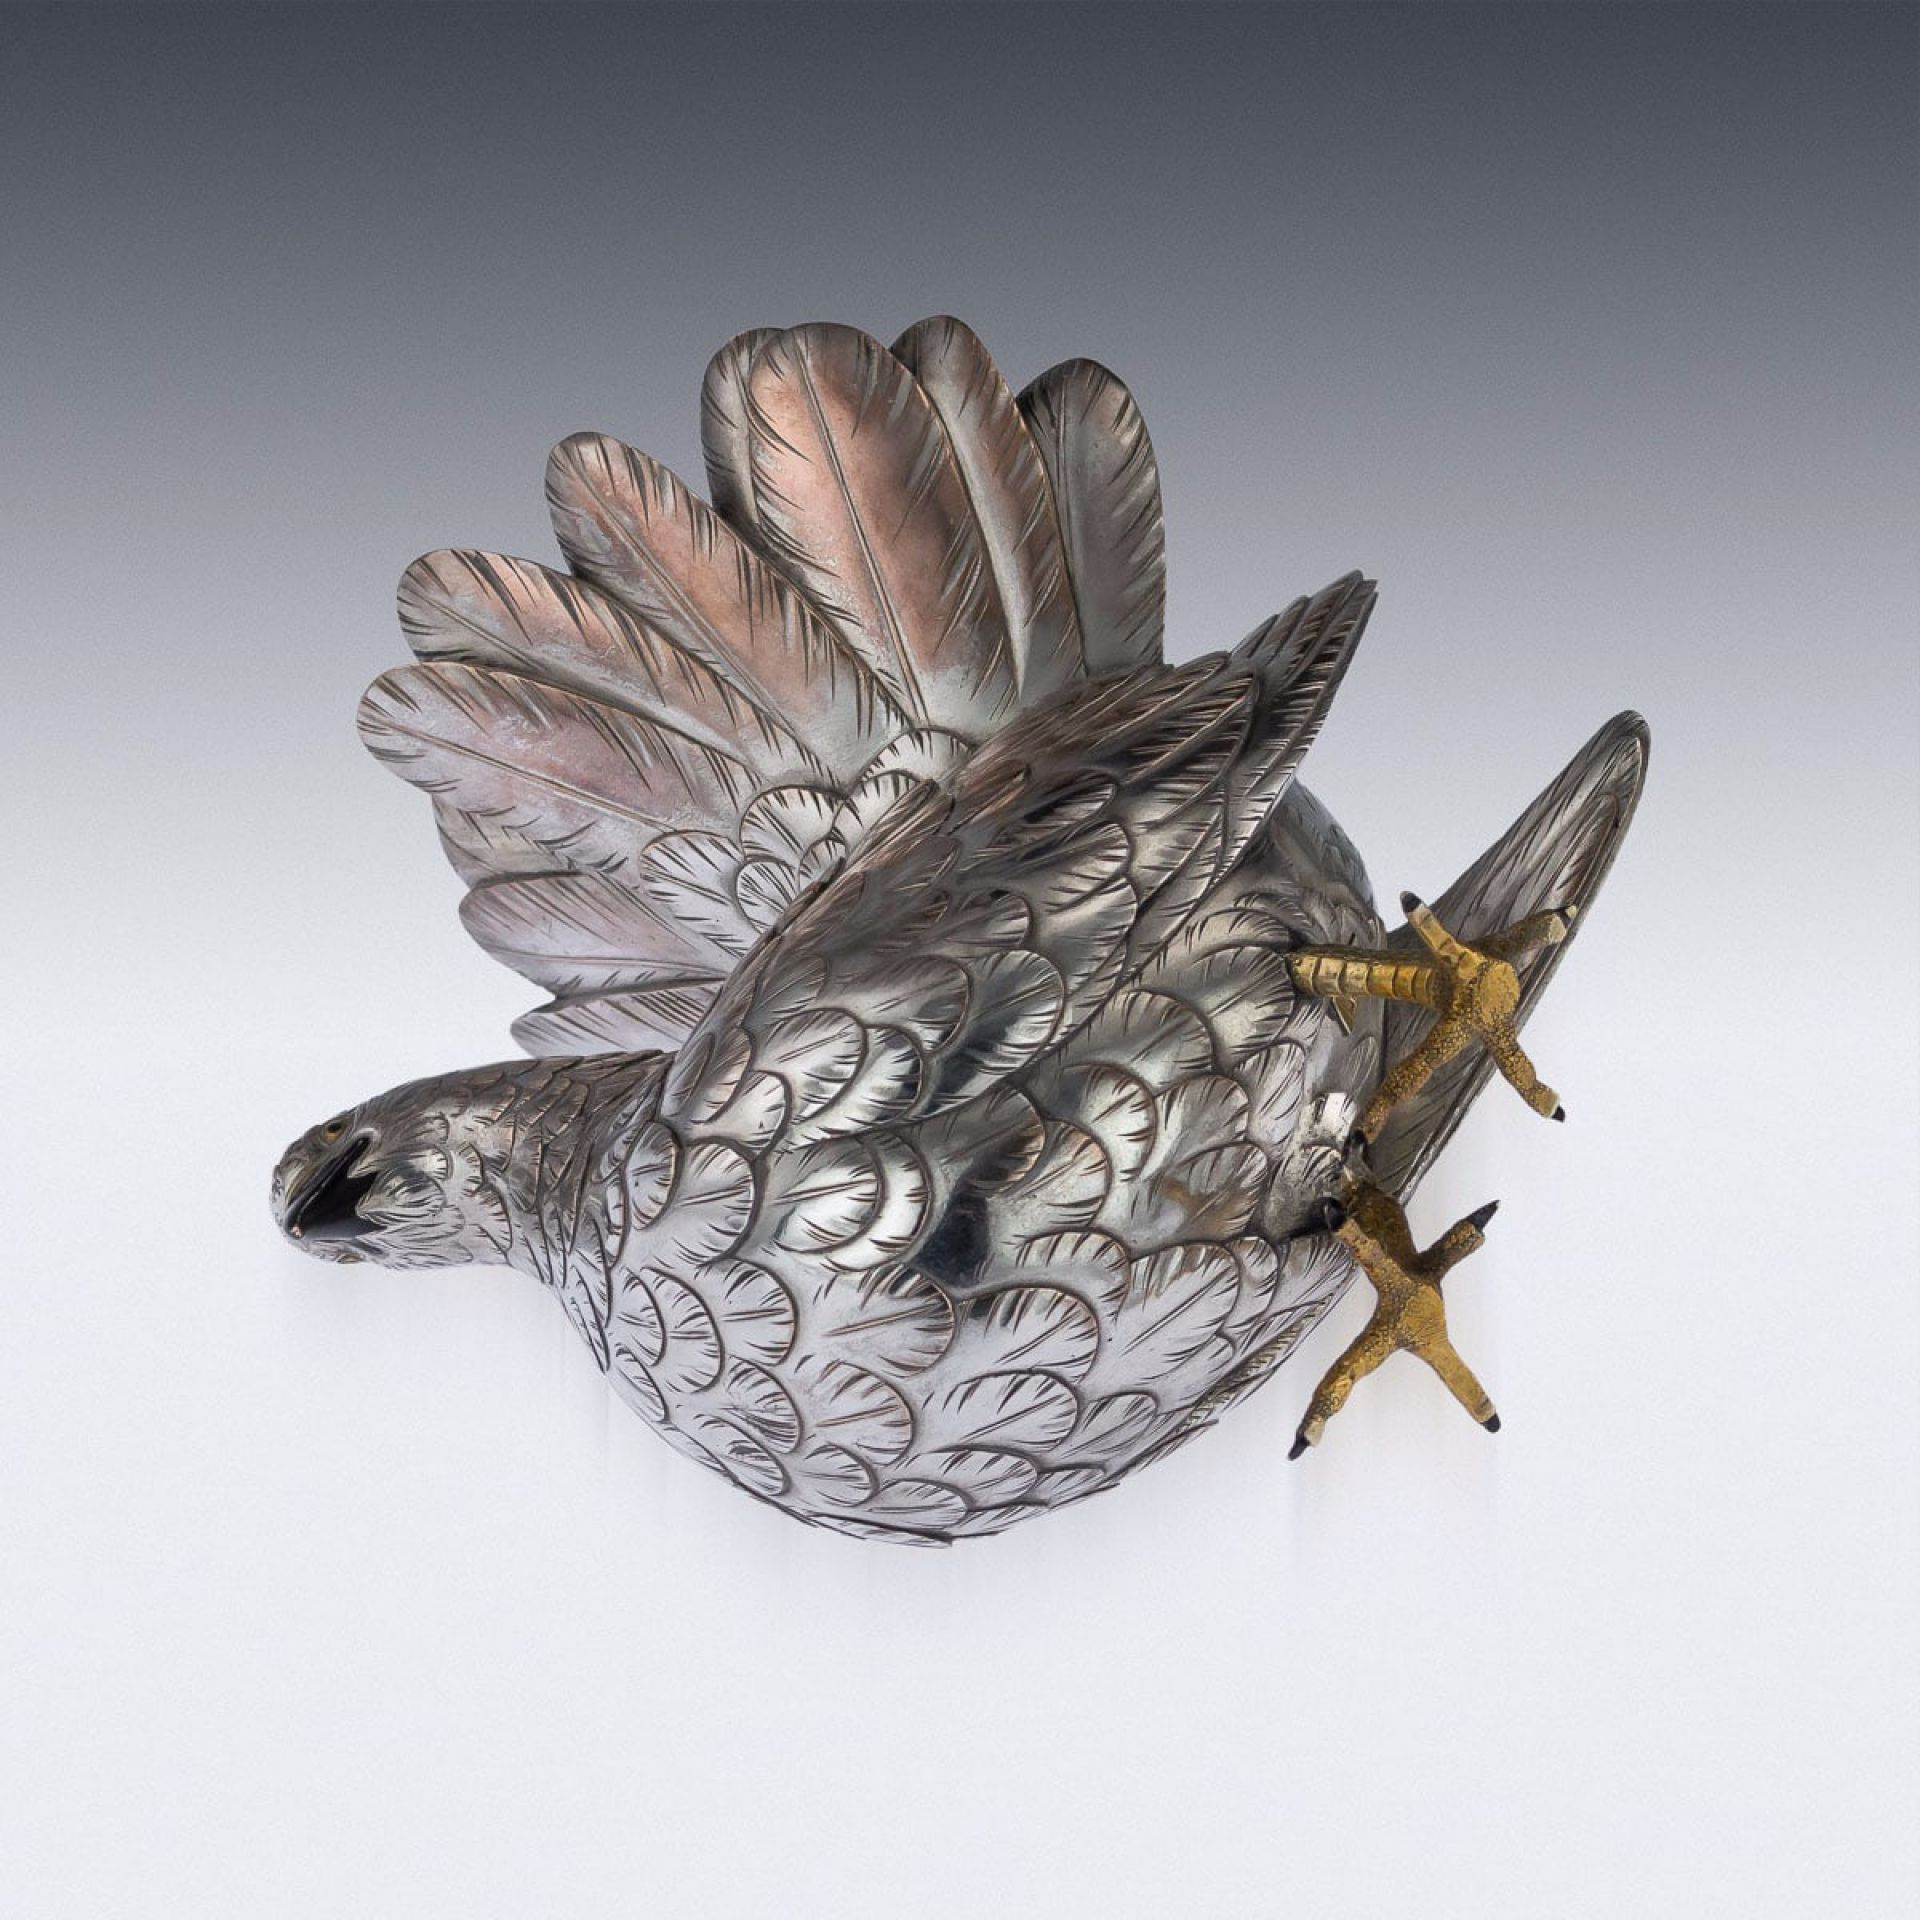 ANTIQUE 20thC JAPANESE SILVERED BRONZE MODEL OF A WOOD PIGEON c.1900